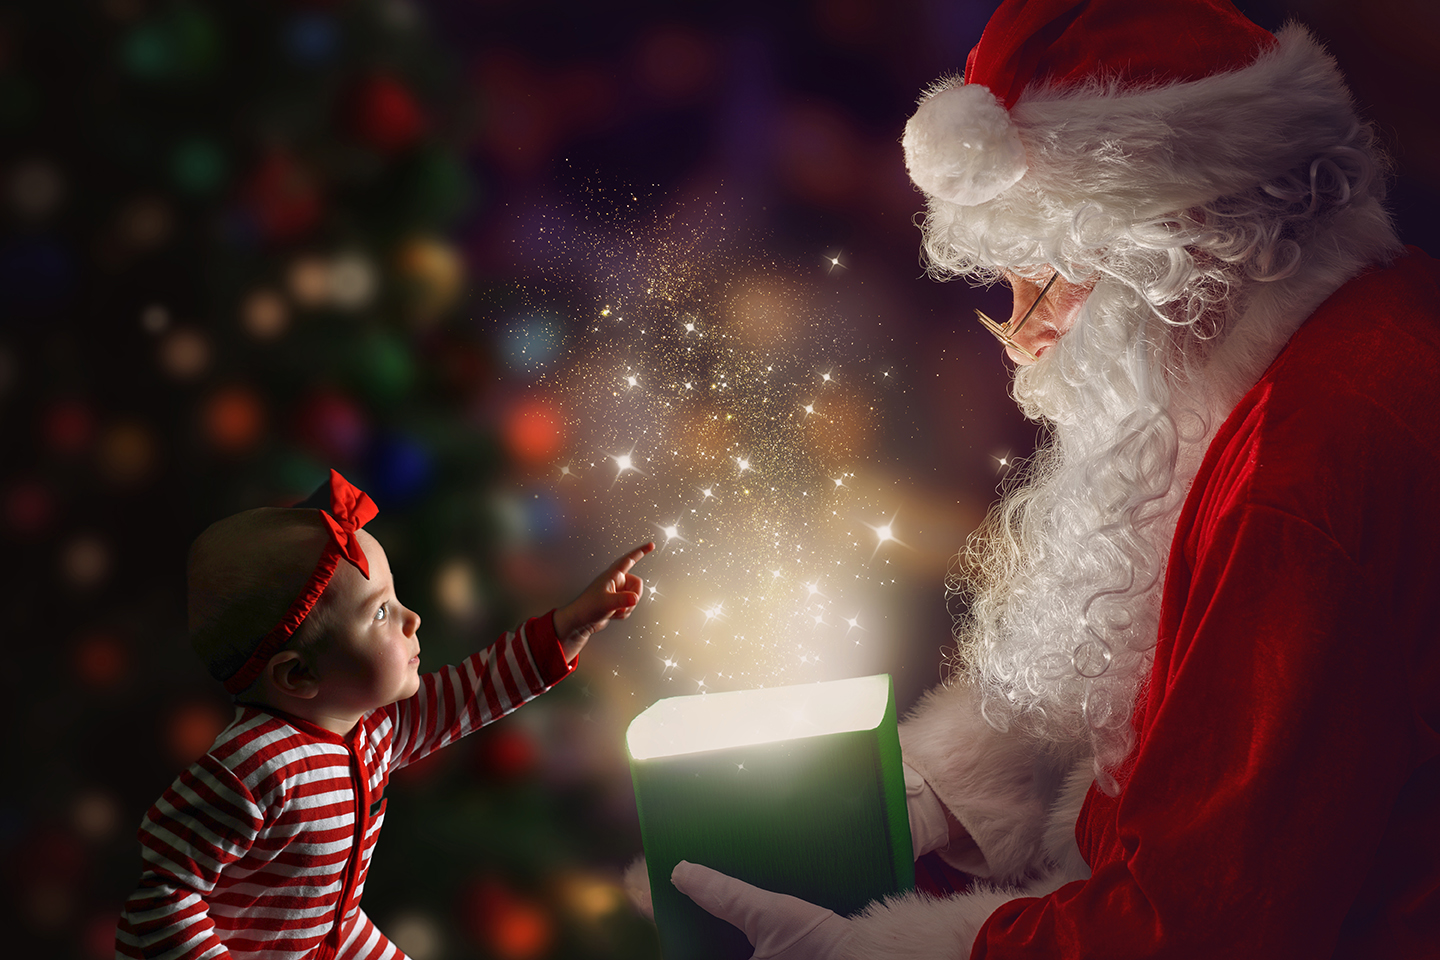 little girl in magical christmas background with santa holding a gift with magic light sparkle inside